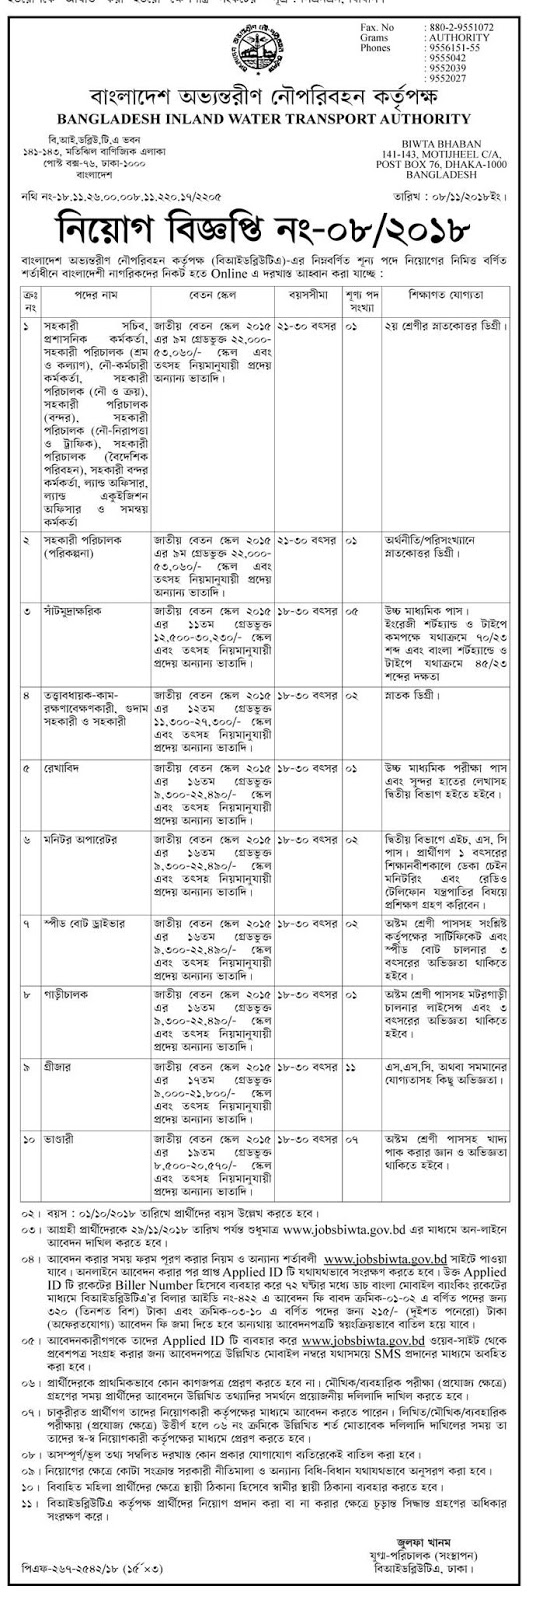 Bangladesh Inland Water Transport Authority (BIWTA) Job Circular 2018